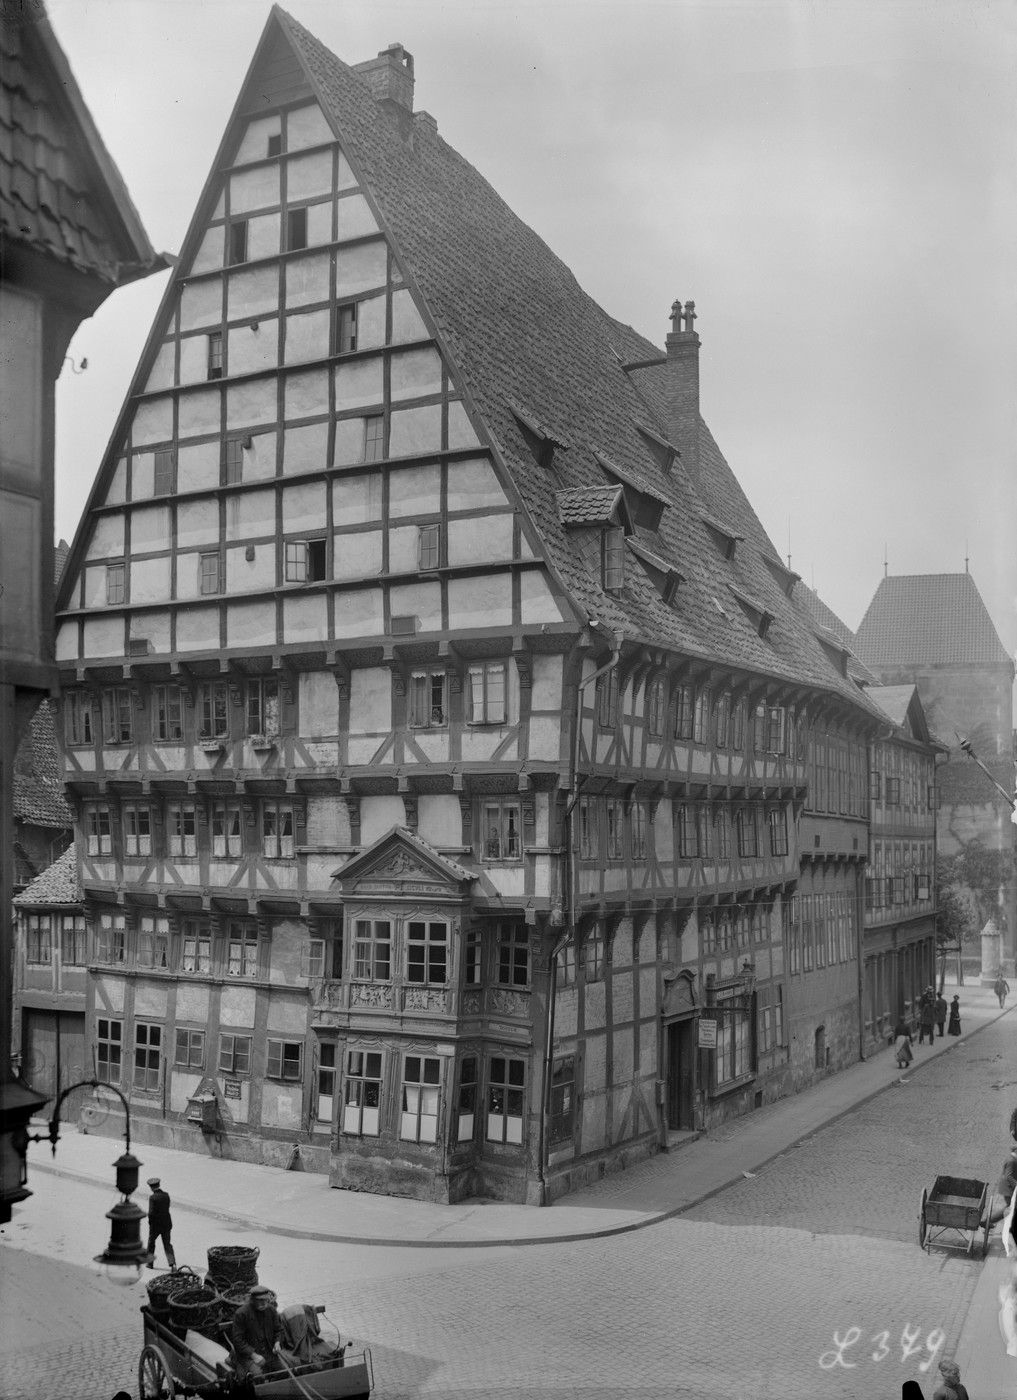 Germany at the end of the 19th century before wwii for Architecture nazi